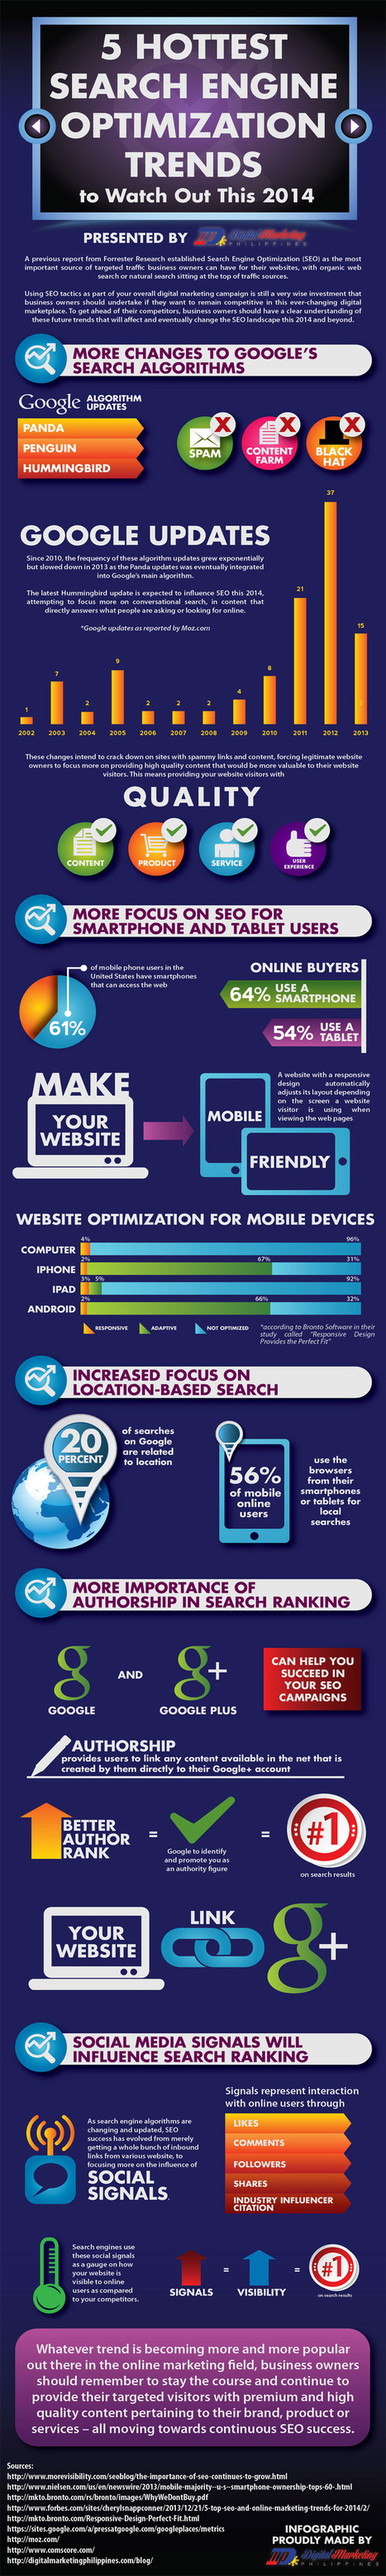 5 Search Engine Optimization Trends For 2014 (Infographic) | SEO | Scoop.it